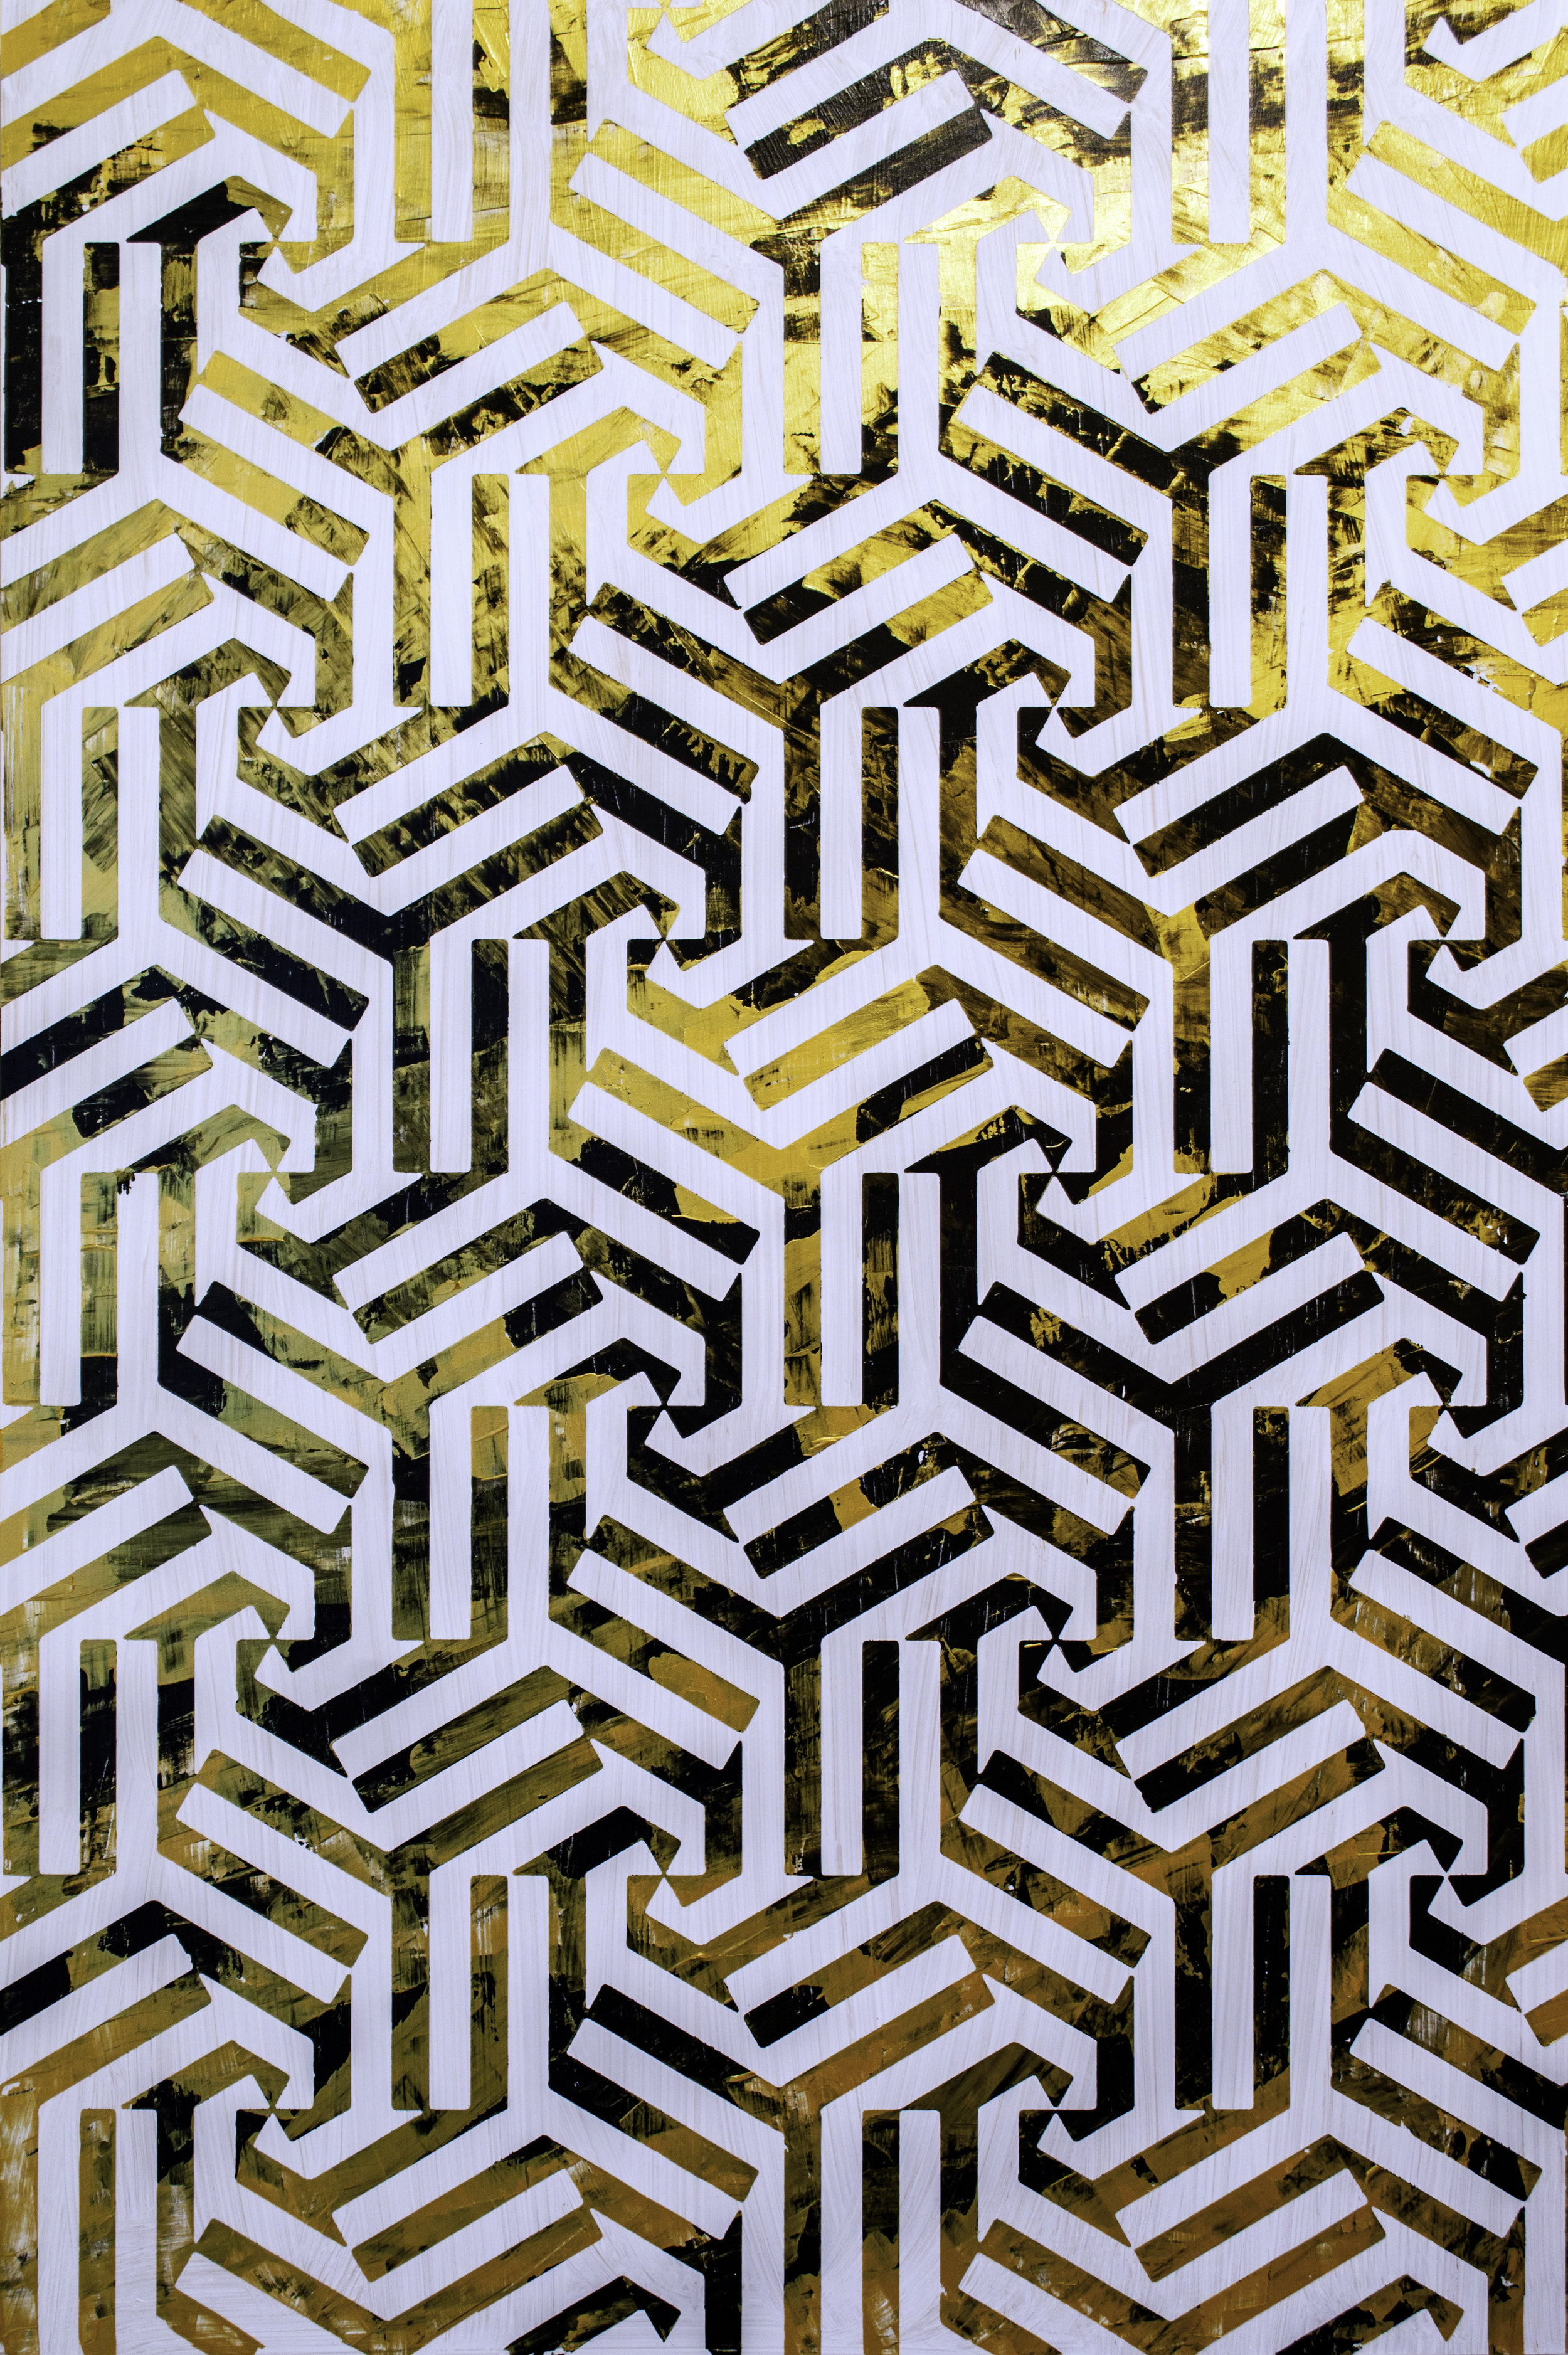 HUE Gallery of Contemporary Art - Sean Christopher Ward - Diamonds and Stripes and Everything Nice - Acrylic on Wood Panel - 24x36x1.5 - 2019 - $1800.jpg